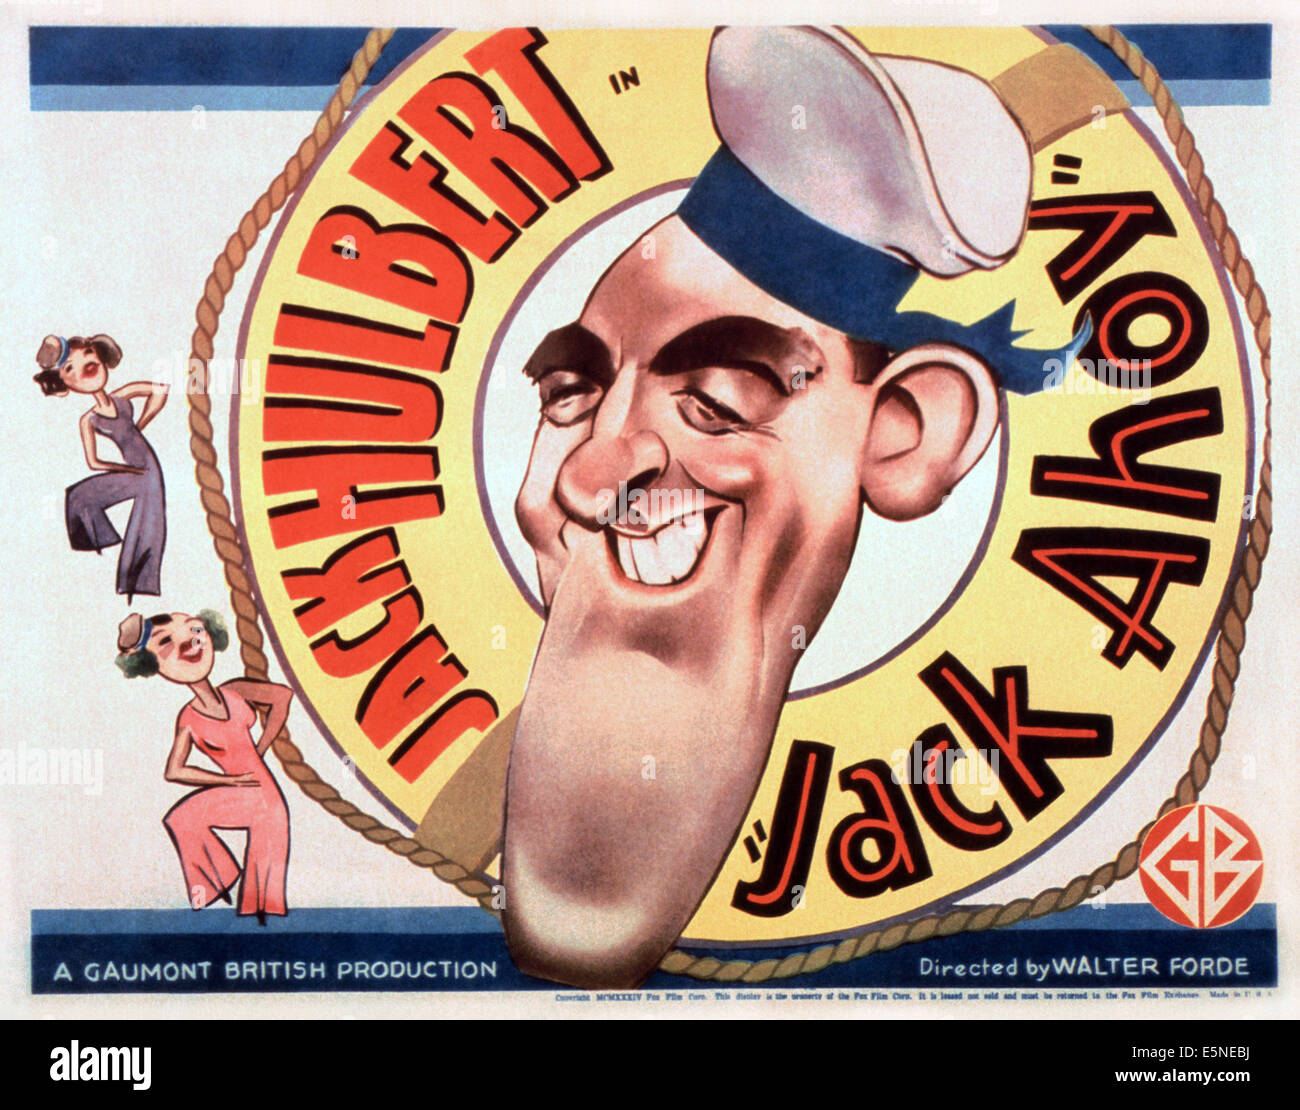 JACK AHOY, Jack Hulbert, 1934 Stock Photo